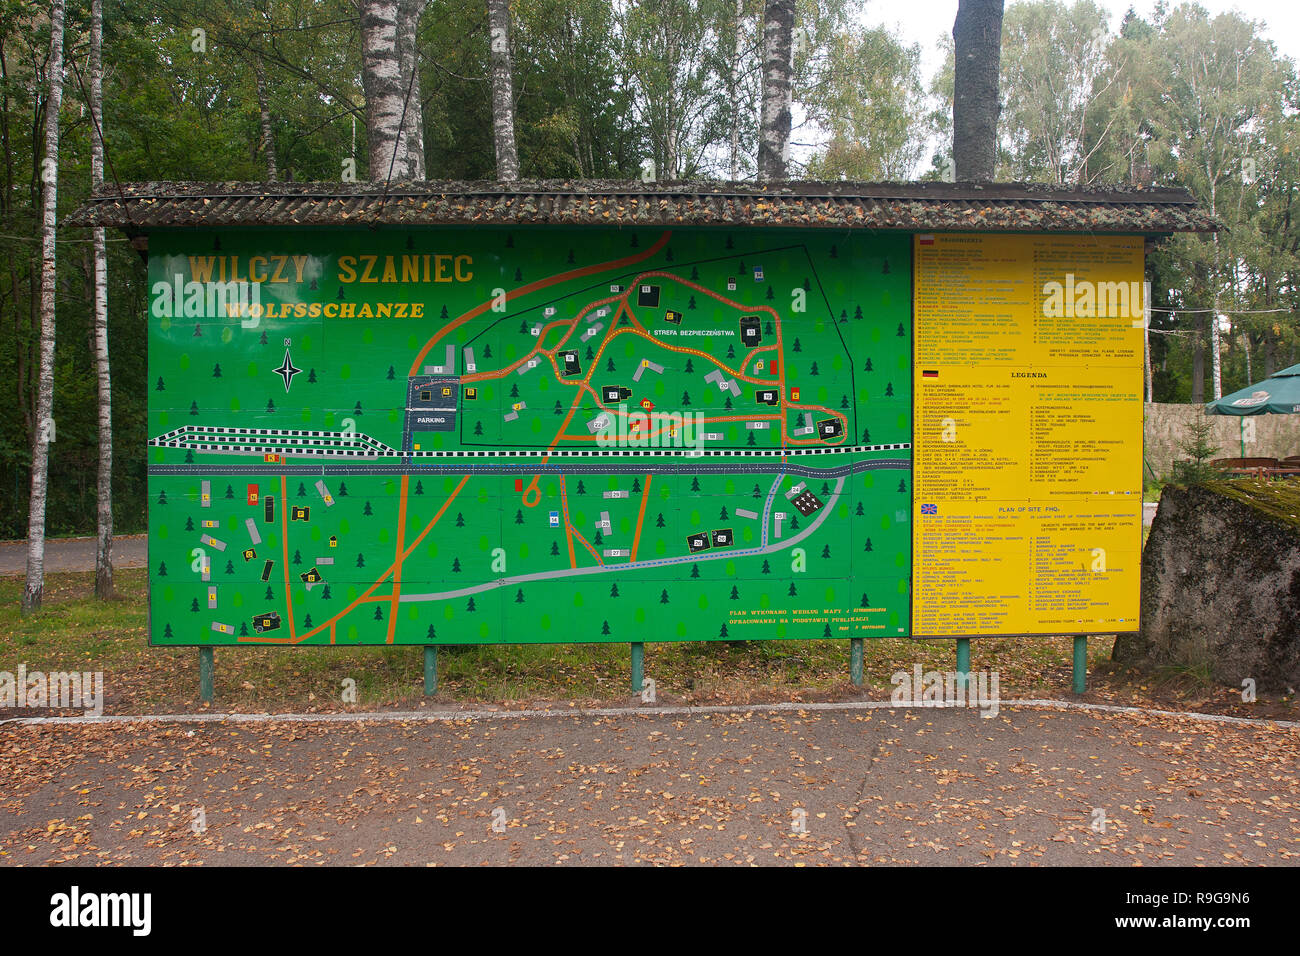 Position plan of Remains of Wolf's Lair (german: Wolfsschanze), Führer's headquarters of Adolf Hitler, Rastenburg, Masuria, Poland, Europe - Stock Image